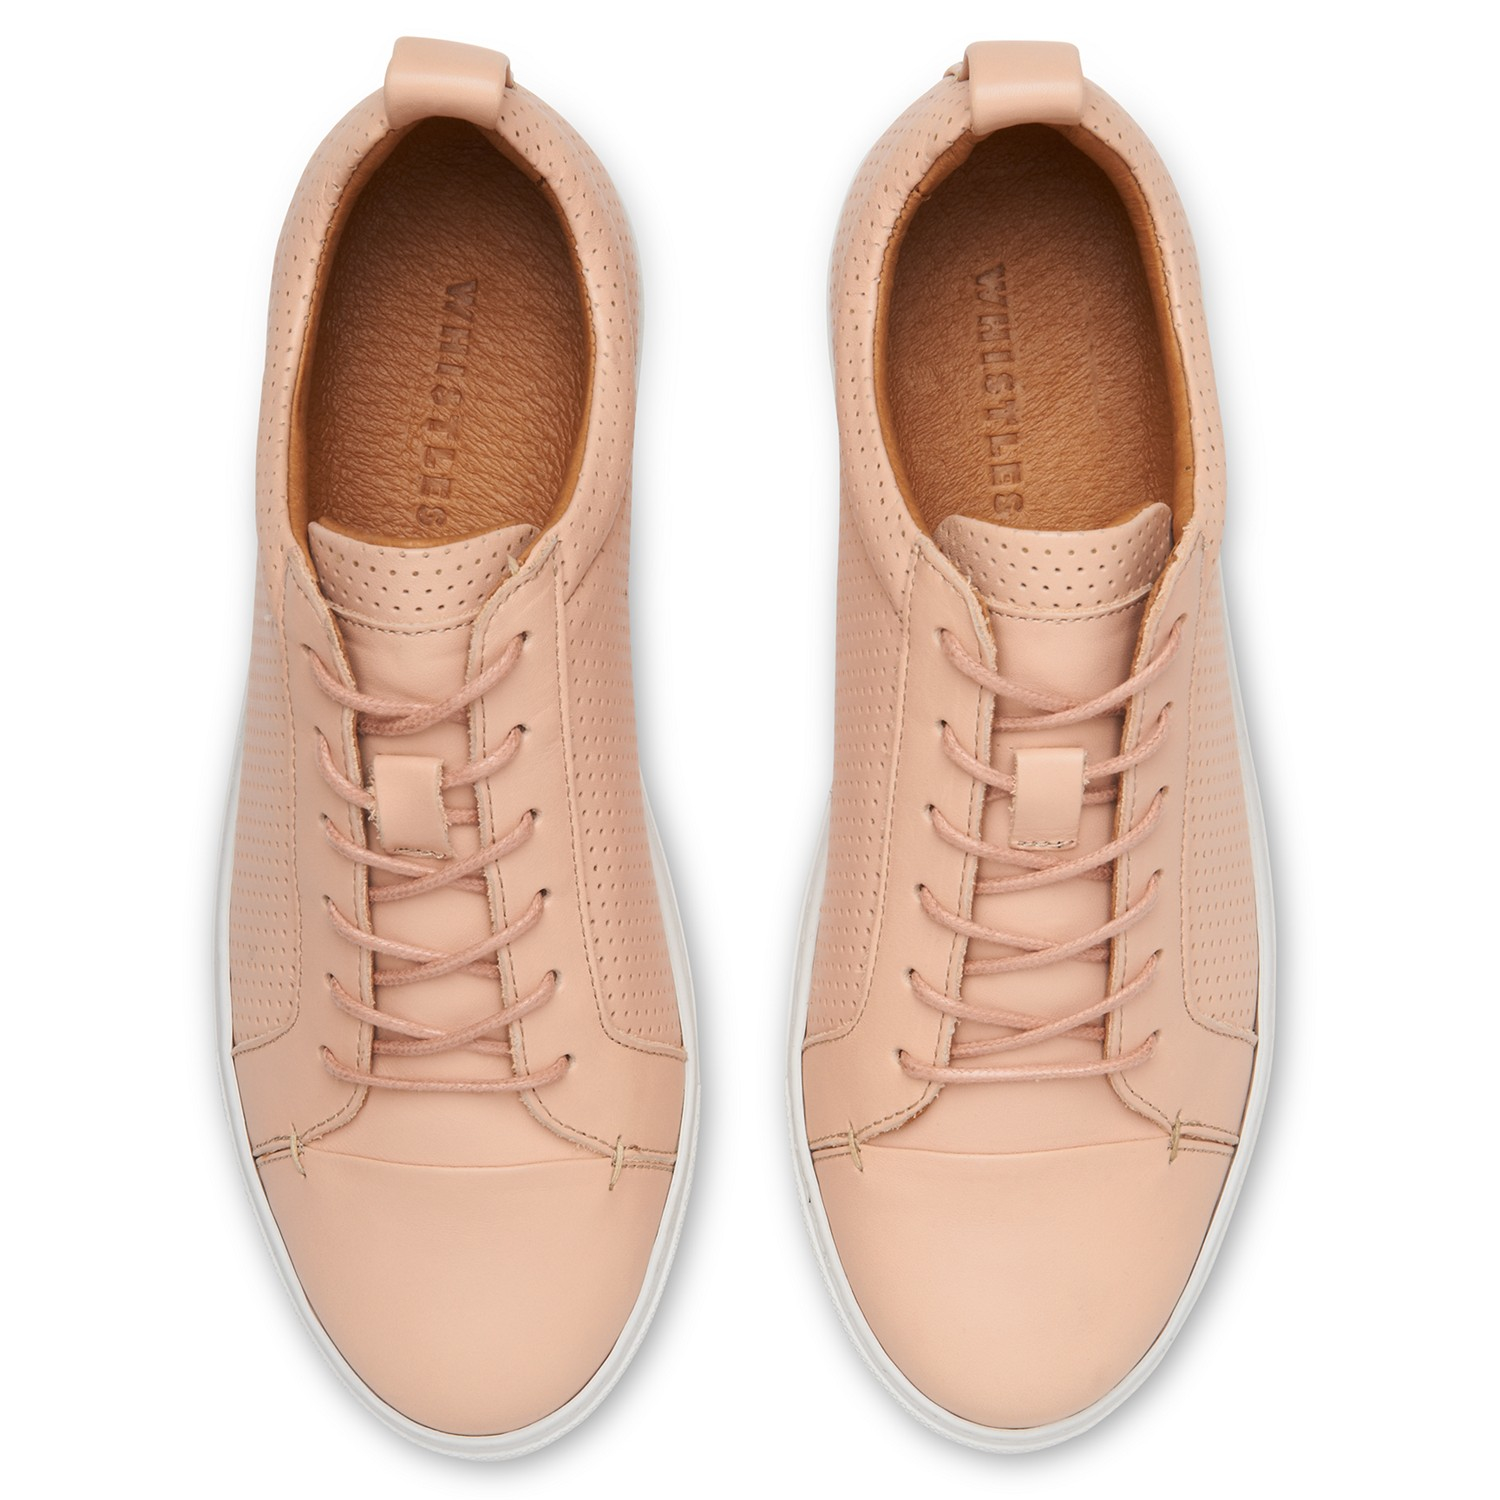 Whistles Leather Kenley Lace Up Trainers in Nude Leather (Natural)